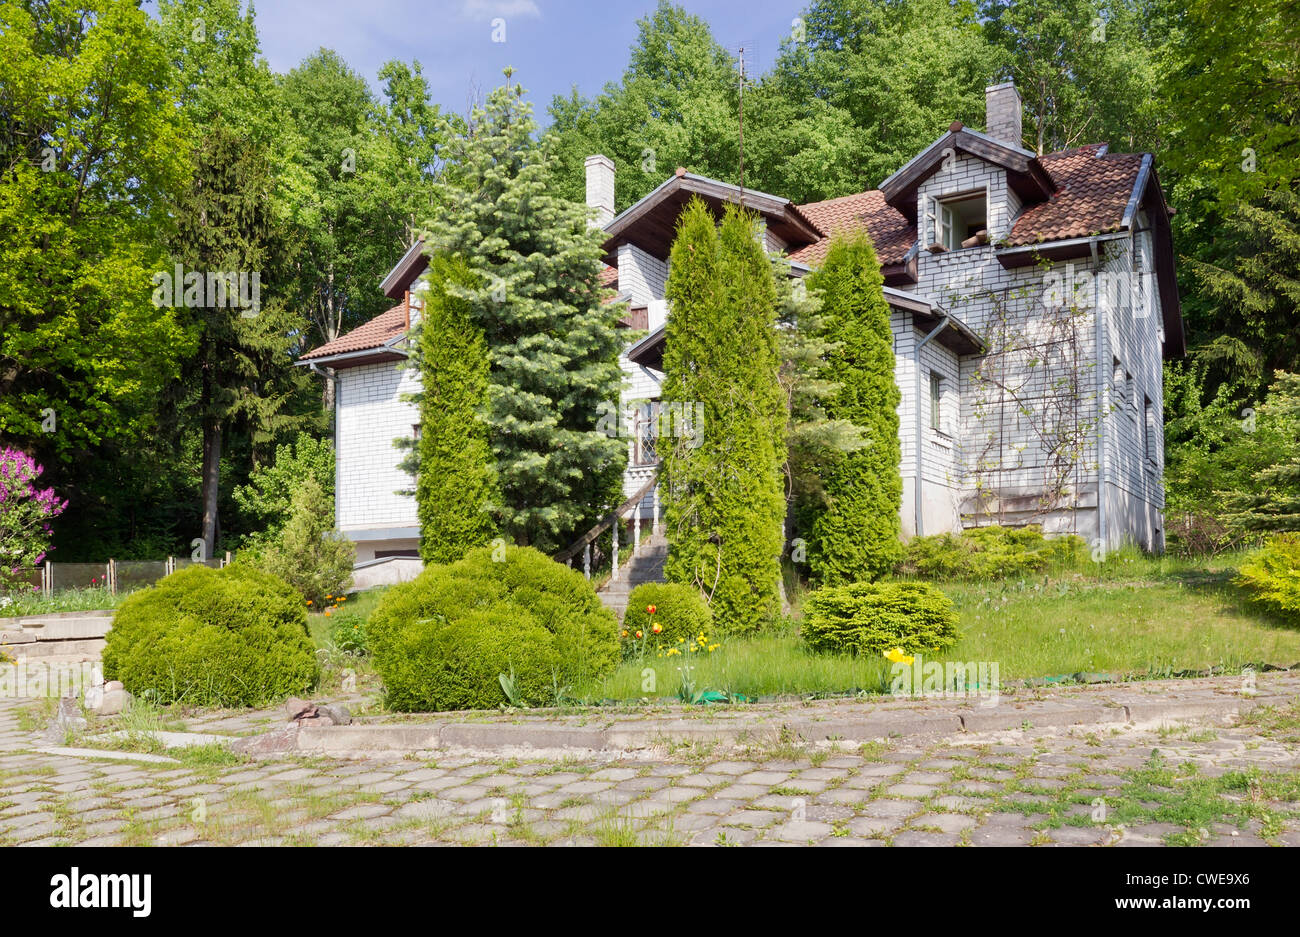 Abandoned unfinished no name mass production house ( villa) in the forest woods. Selective focus - Stock Image